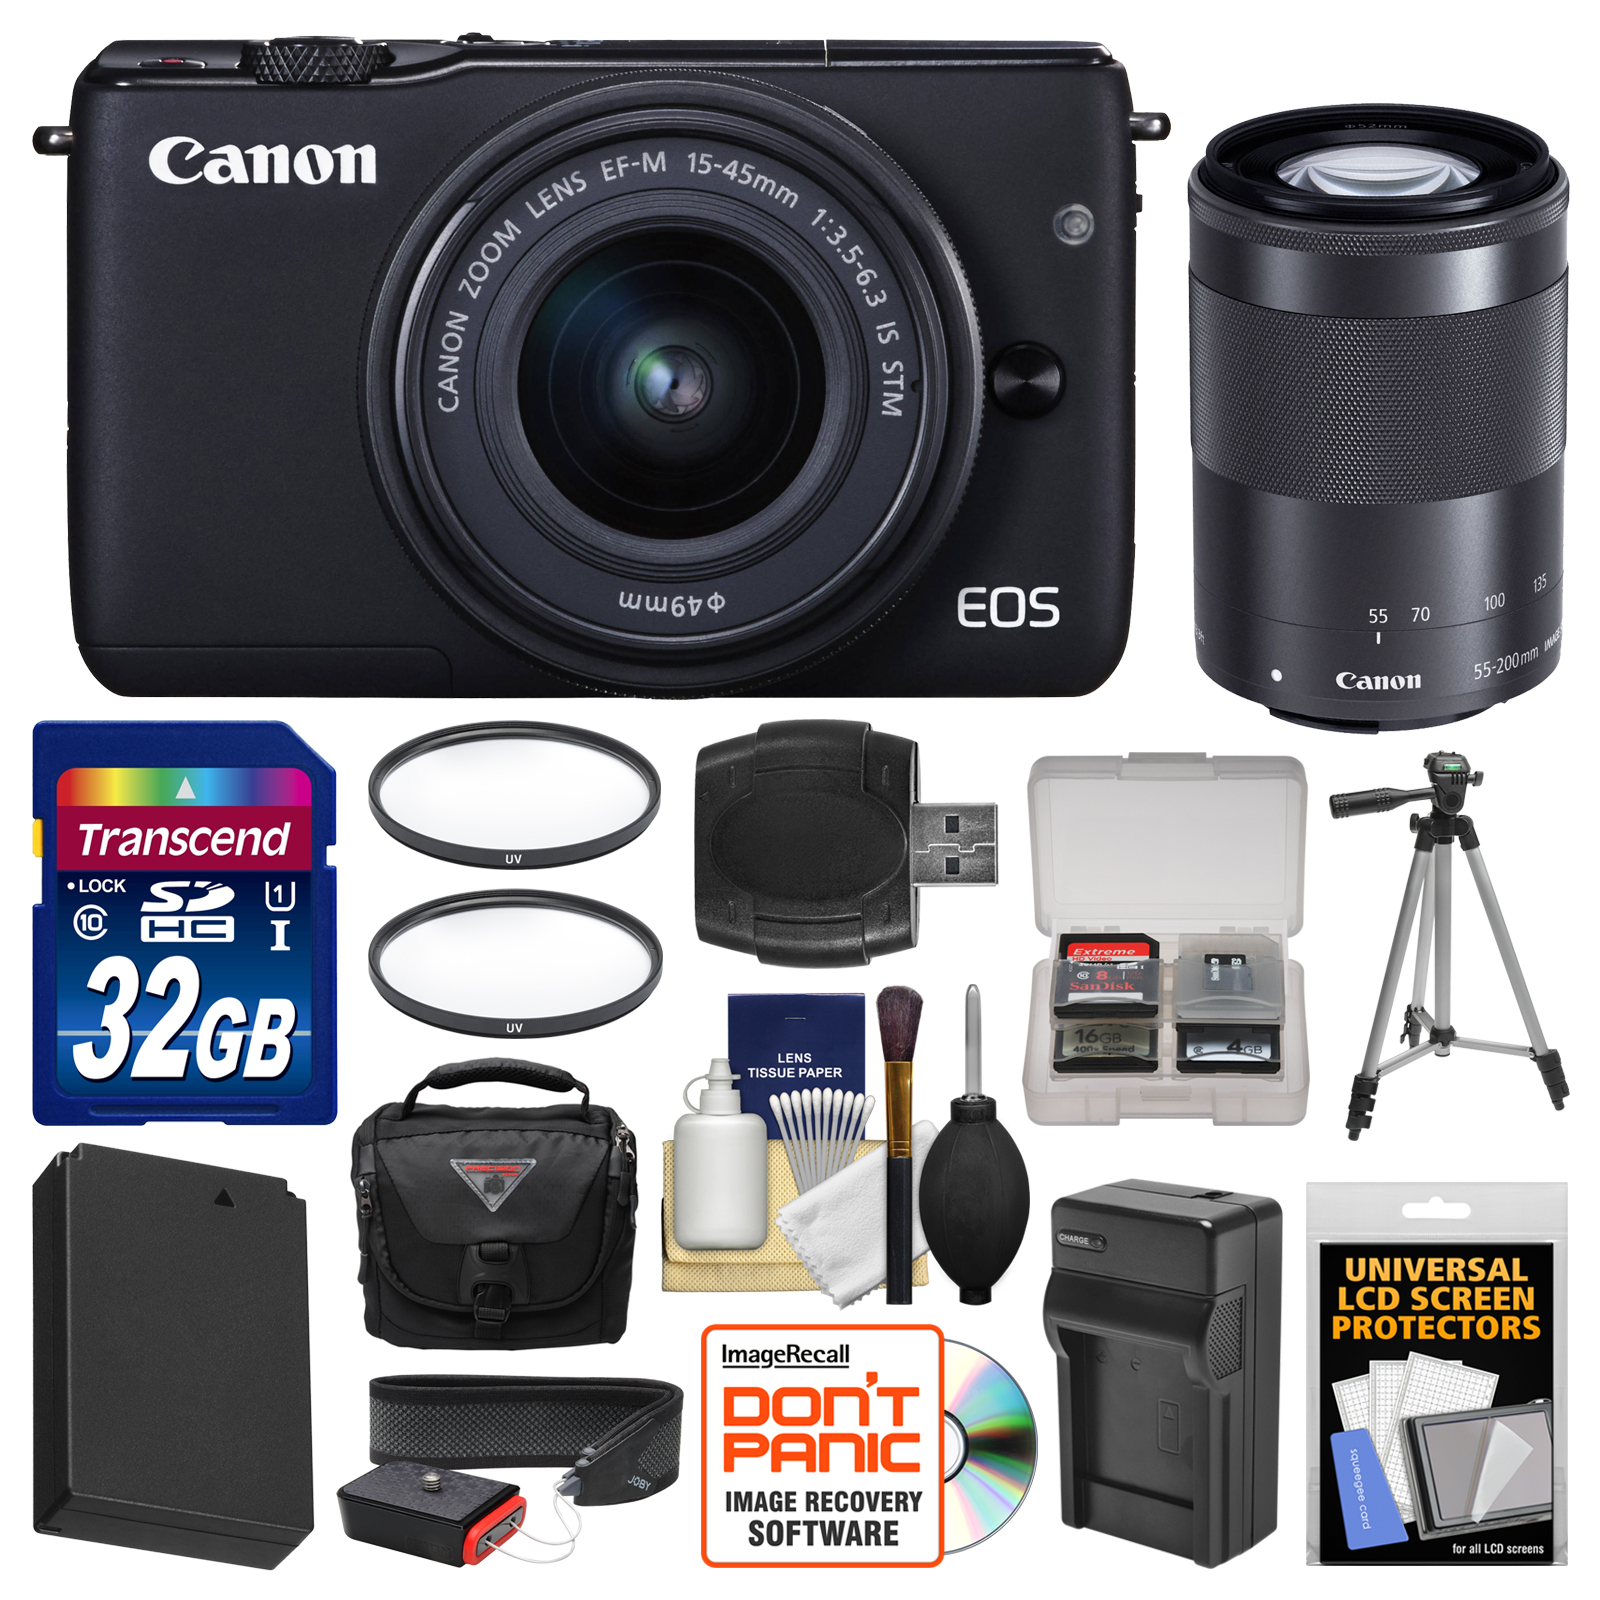 Canon Eos M10 Wi Fi Digital Ilc Camera With Ef M 15 45mm 55 200mm Kit 45 Is Stm 10 Lens Black 32gb Card Case Battery Charger Tripod Filters